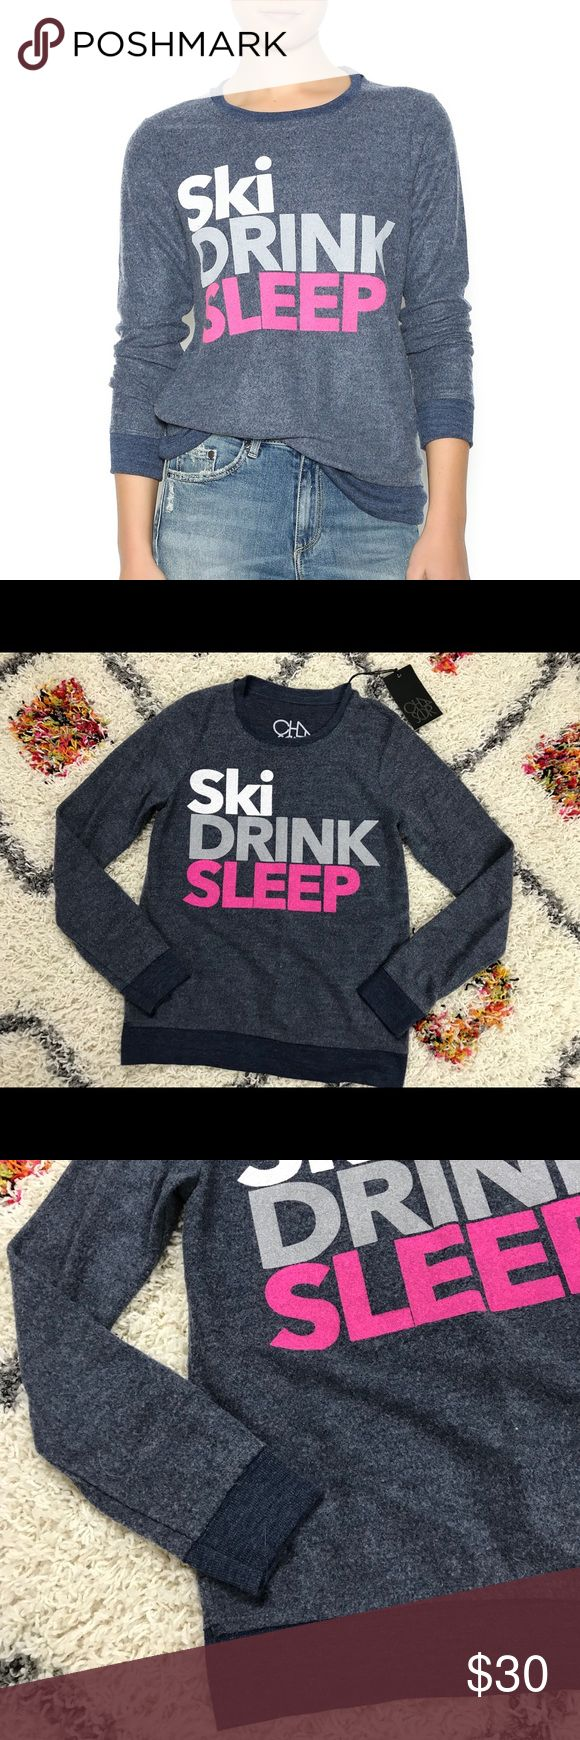 Chaser comfy ski drink sleep sweater sweatshirt XS Super cute and cozy chaser ski drink sleep graphic sweatshirt, size XS. NWT!! Sold at revolve clothing. Chaser Sweaters Crew & Scoop Necks